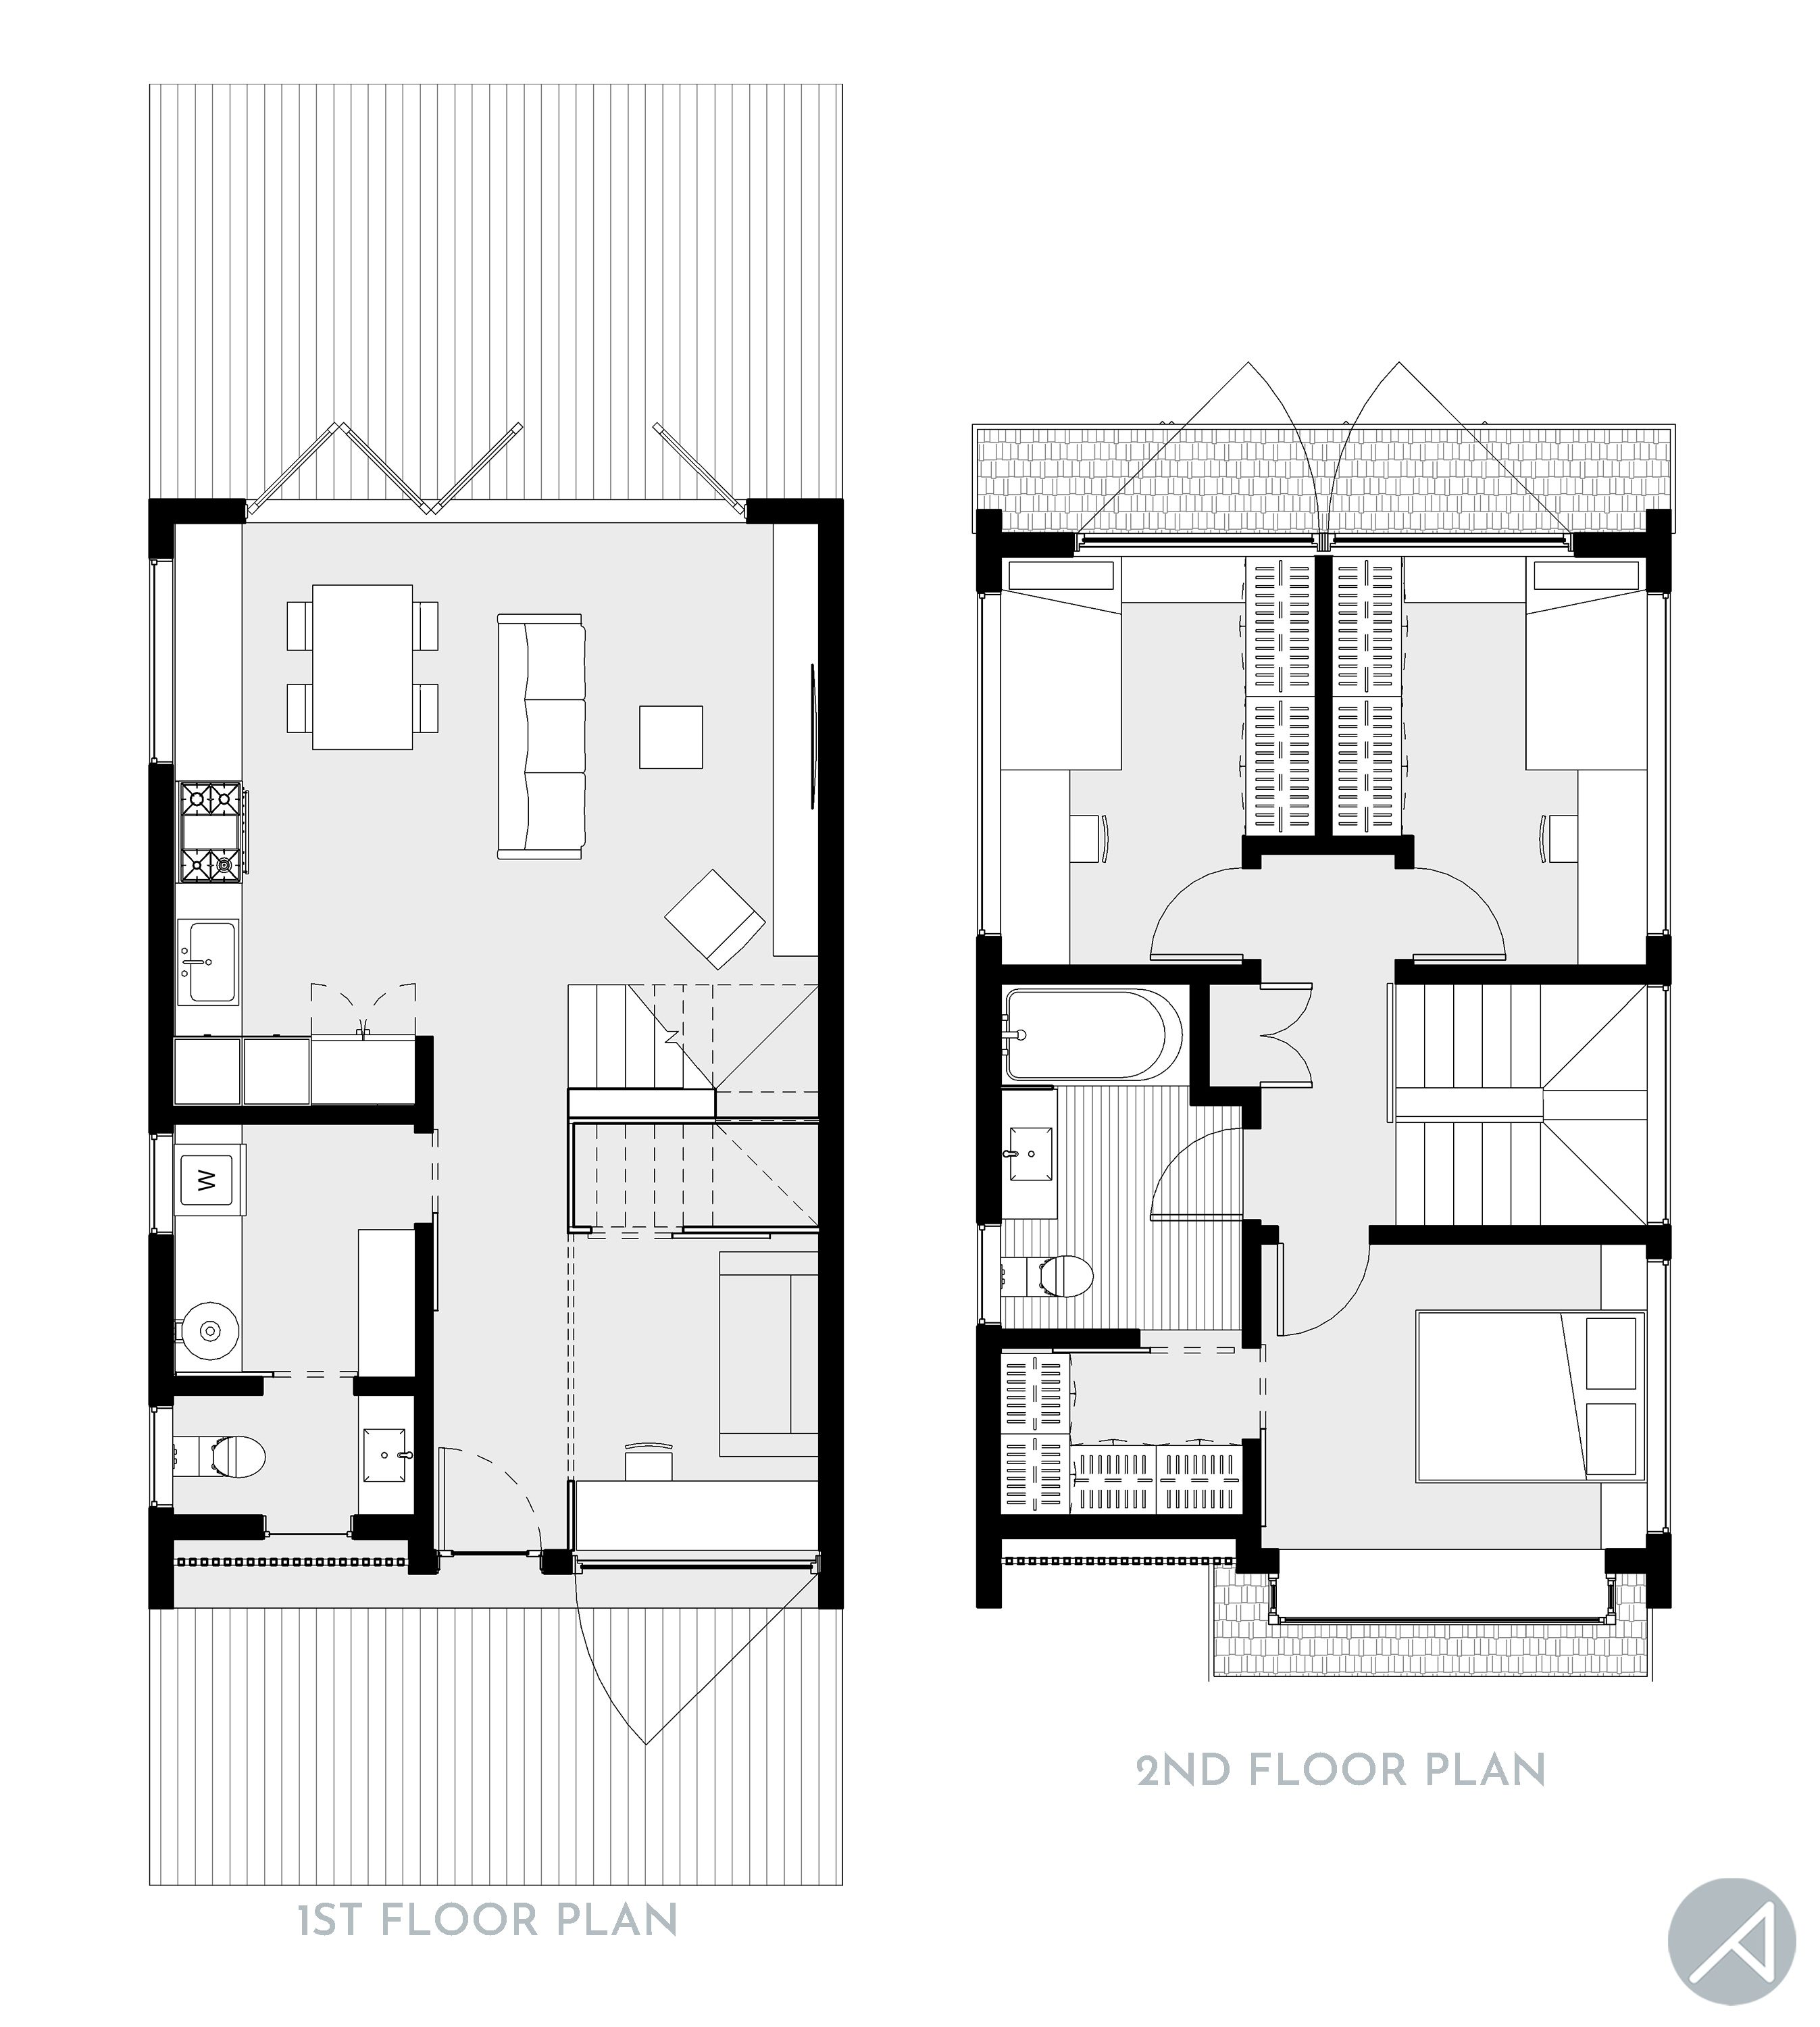 """Modern 3-Bedroom Compact Small House 1,150 sf 2-story structure, 3 Beds + 1 Small Den, 1.5 Baths, 20'-0"""" W x 31'-0"""" D More renderings and previews are available on our website. Please contact us directly for more info and pricing. #tinyhouse #smallhouseplans #smallhousedesign #modularhomes #grannypods #tinyhouse #smallhome #tinyhome"""